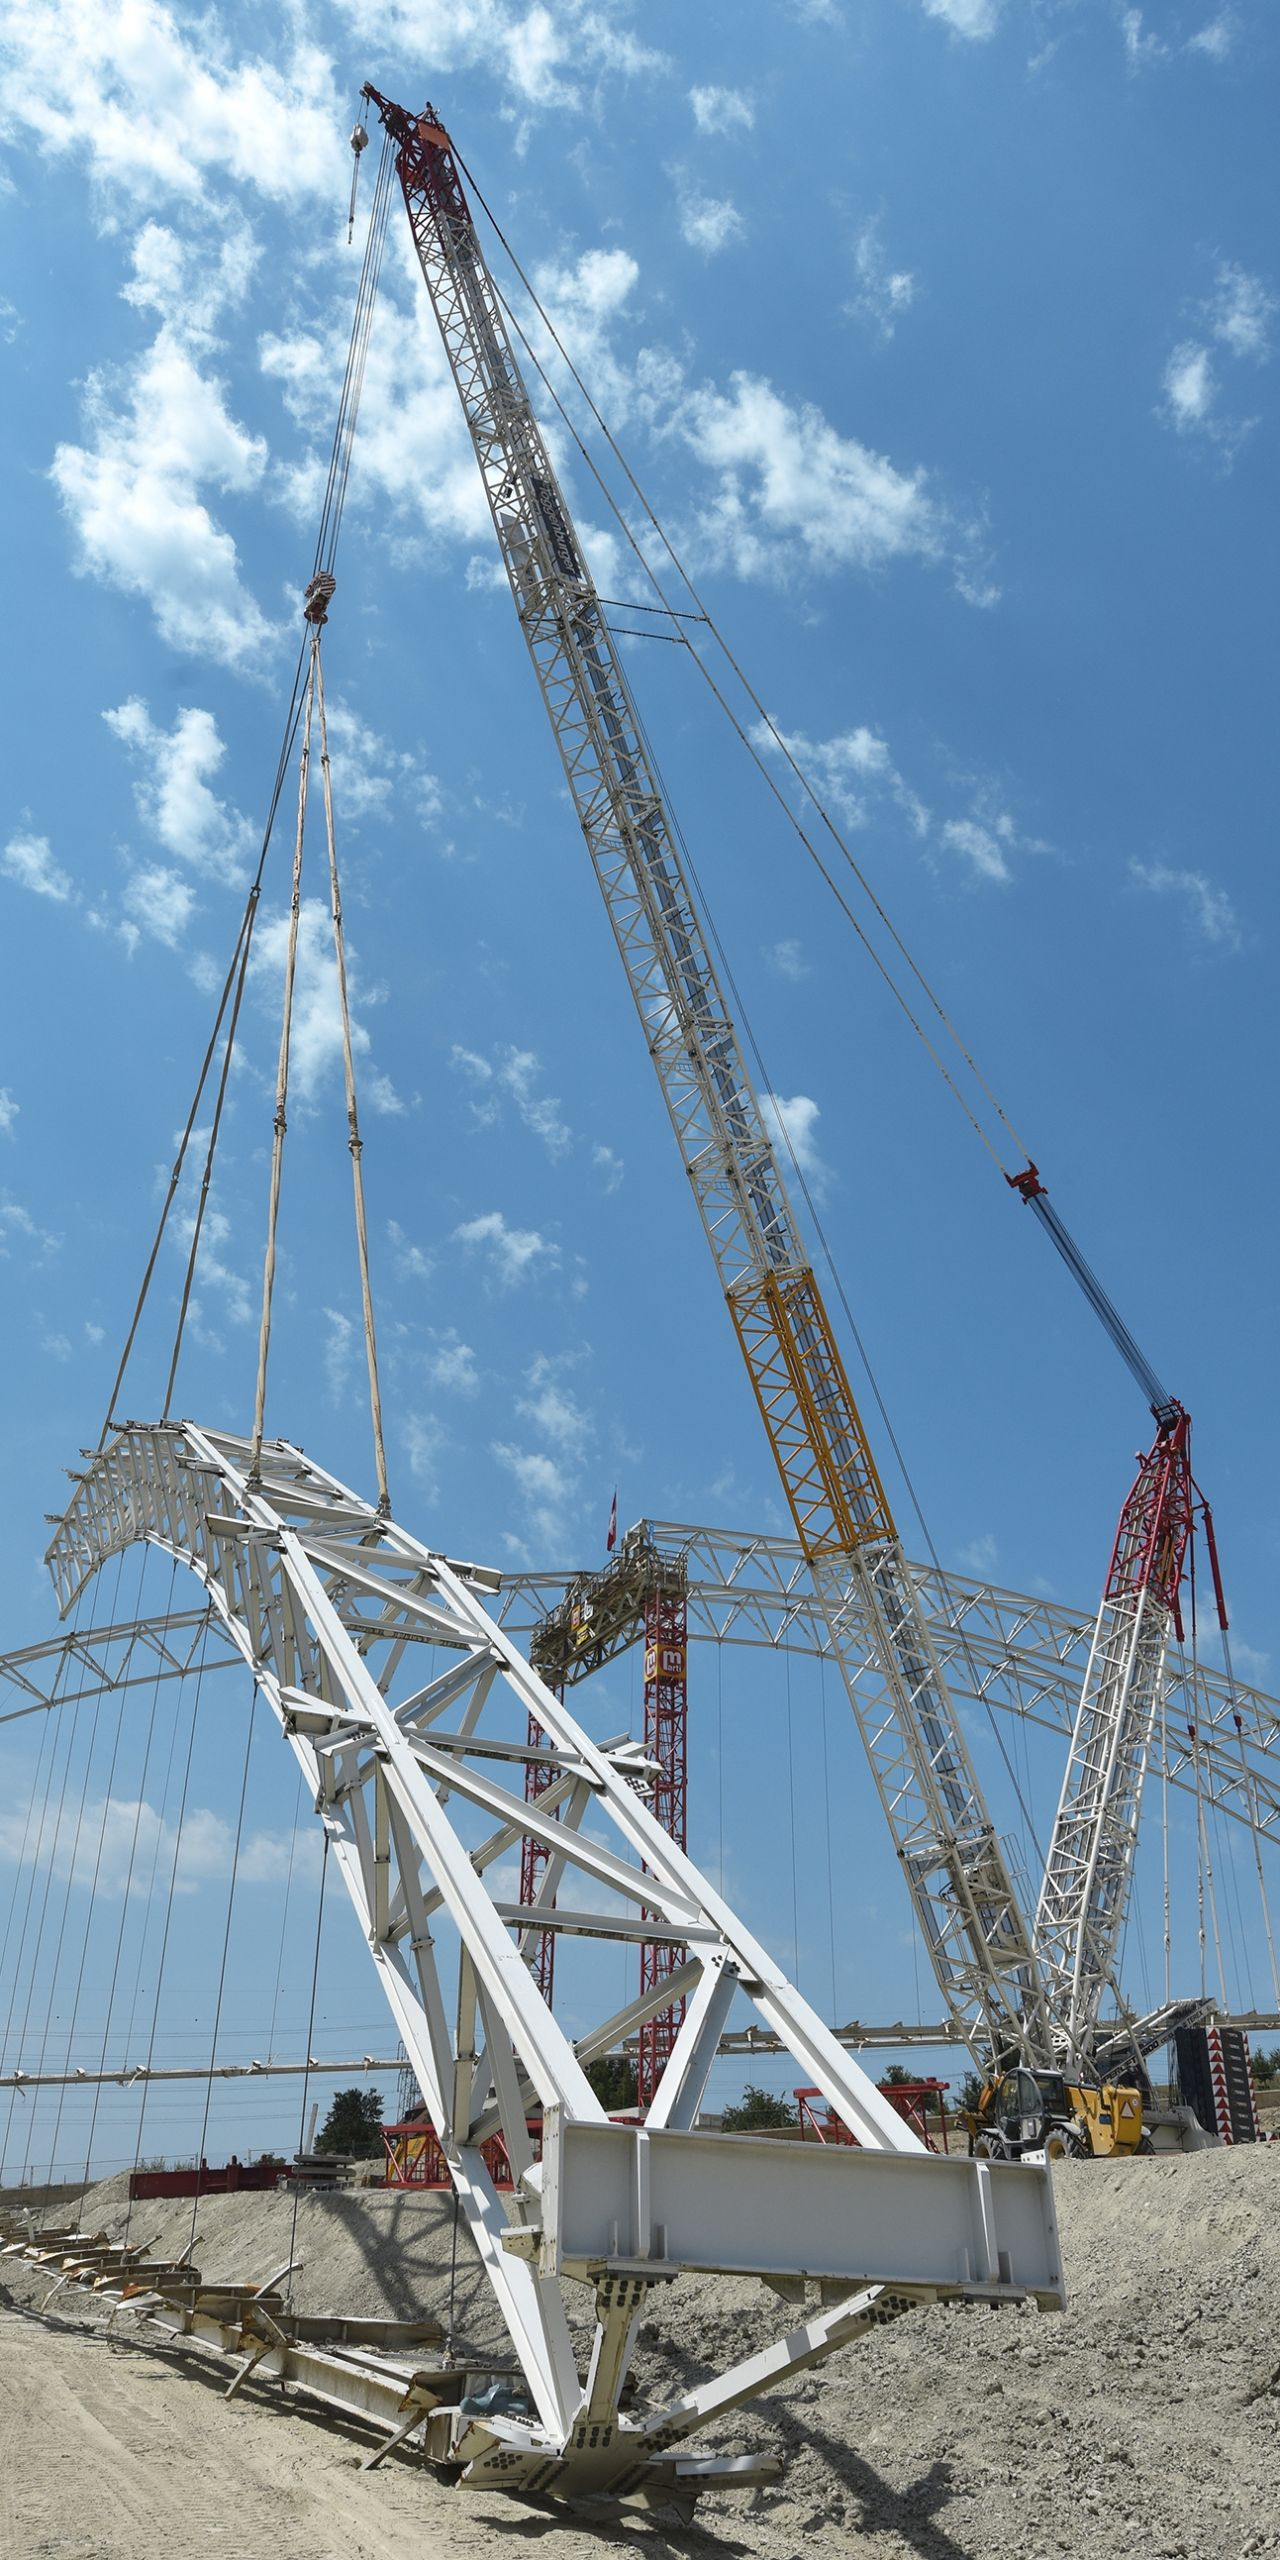 A 650-metric-ton crawler crane removing one half of an arch, weighing around 90 metric tons